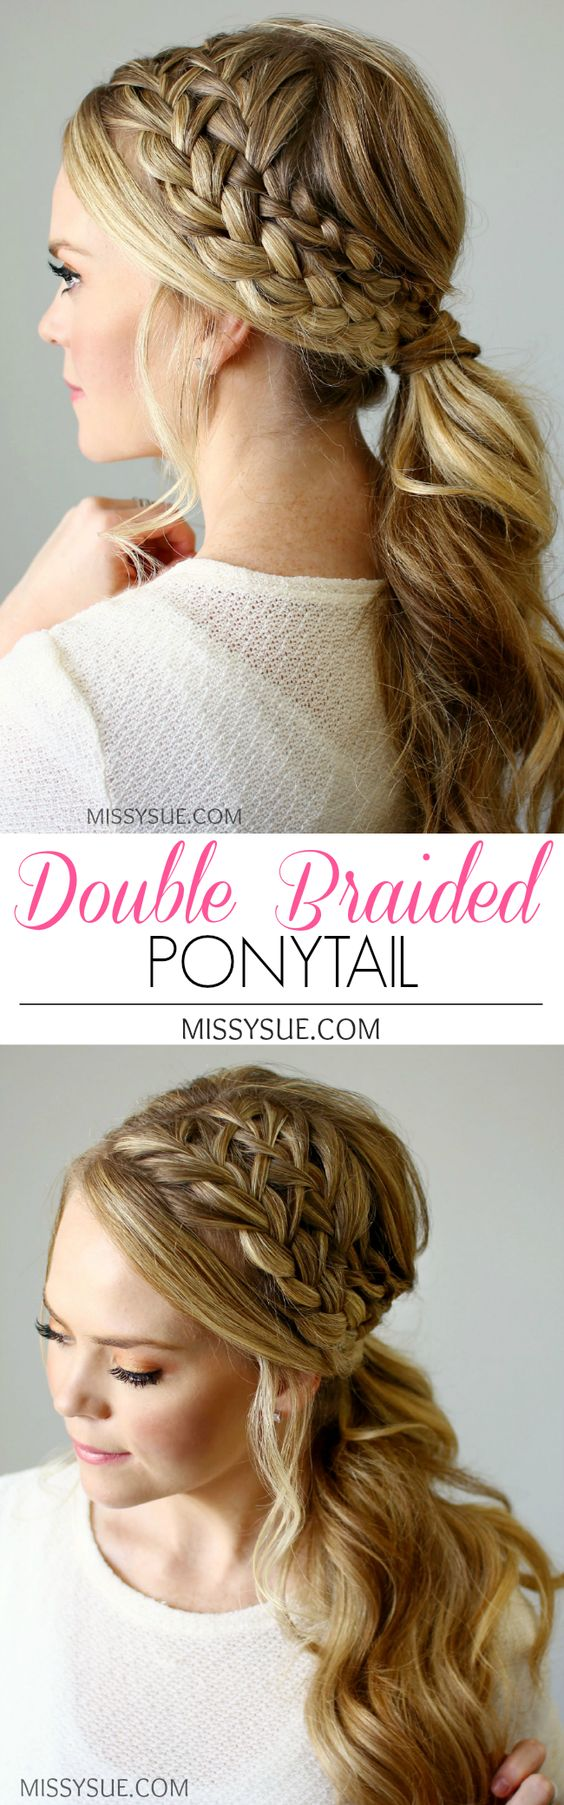 Double side haircut for boys hair a collection of ideas to try about hair and beauty  hair dos